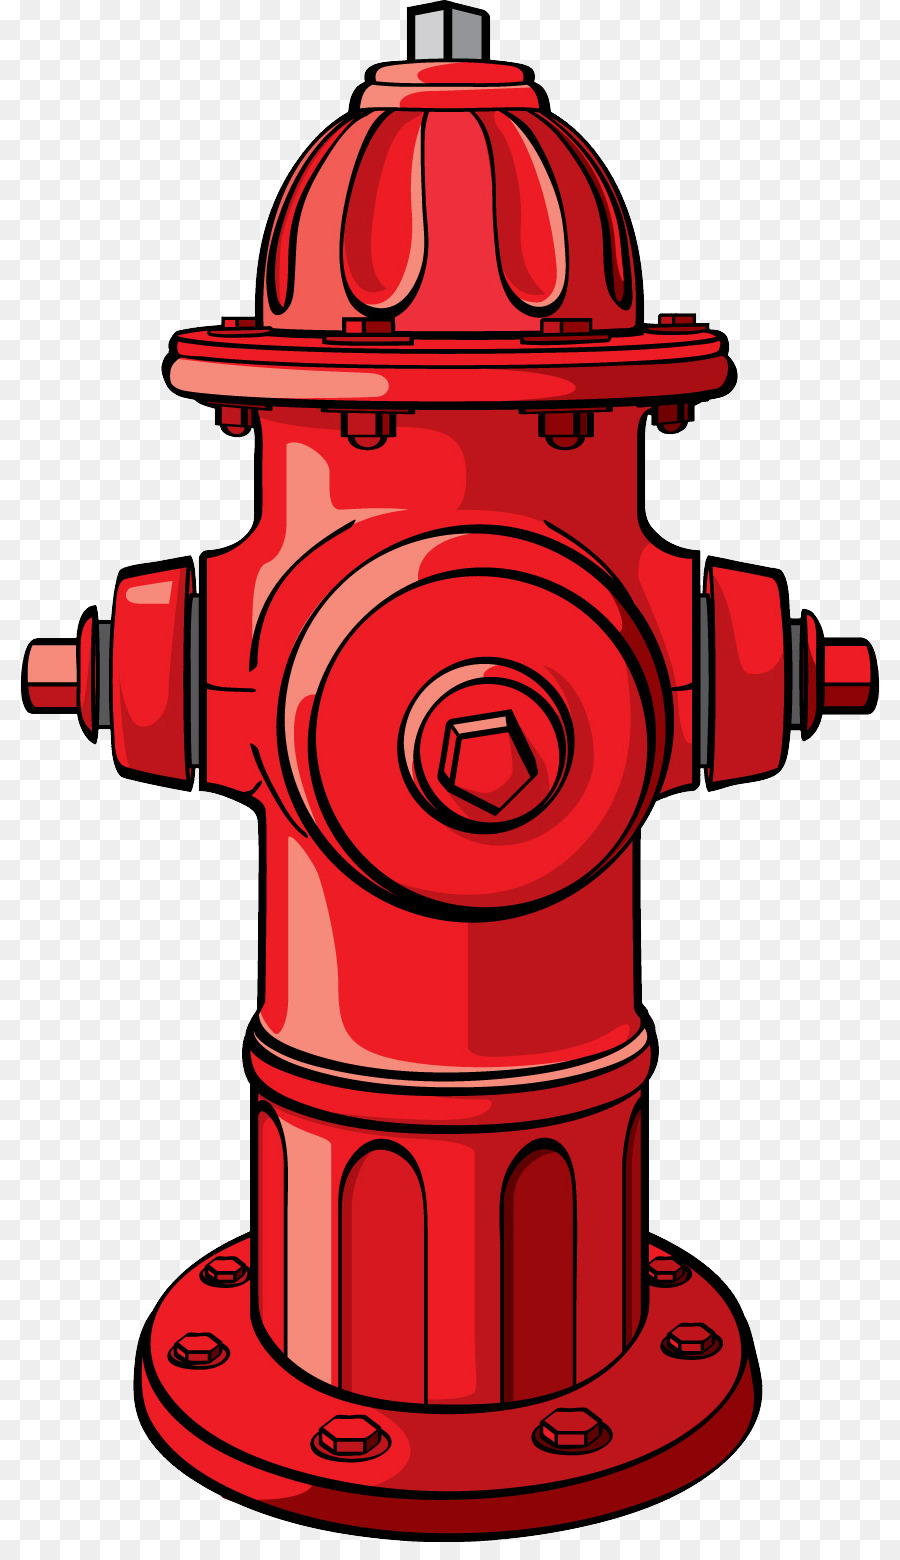 image freeuse Hydrant clipart. Firefighter fire transparent clip